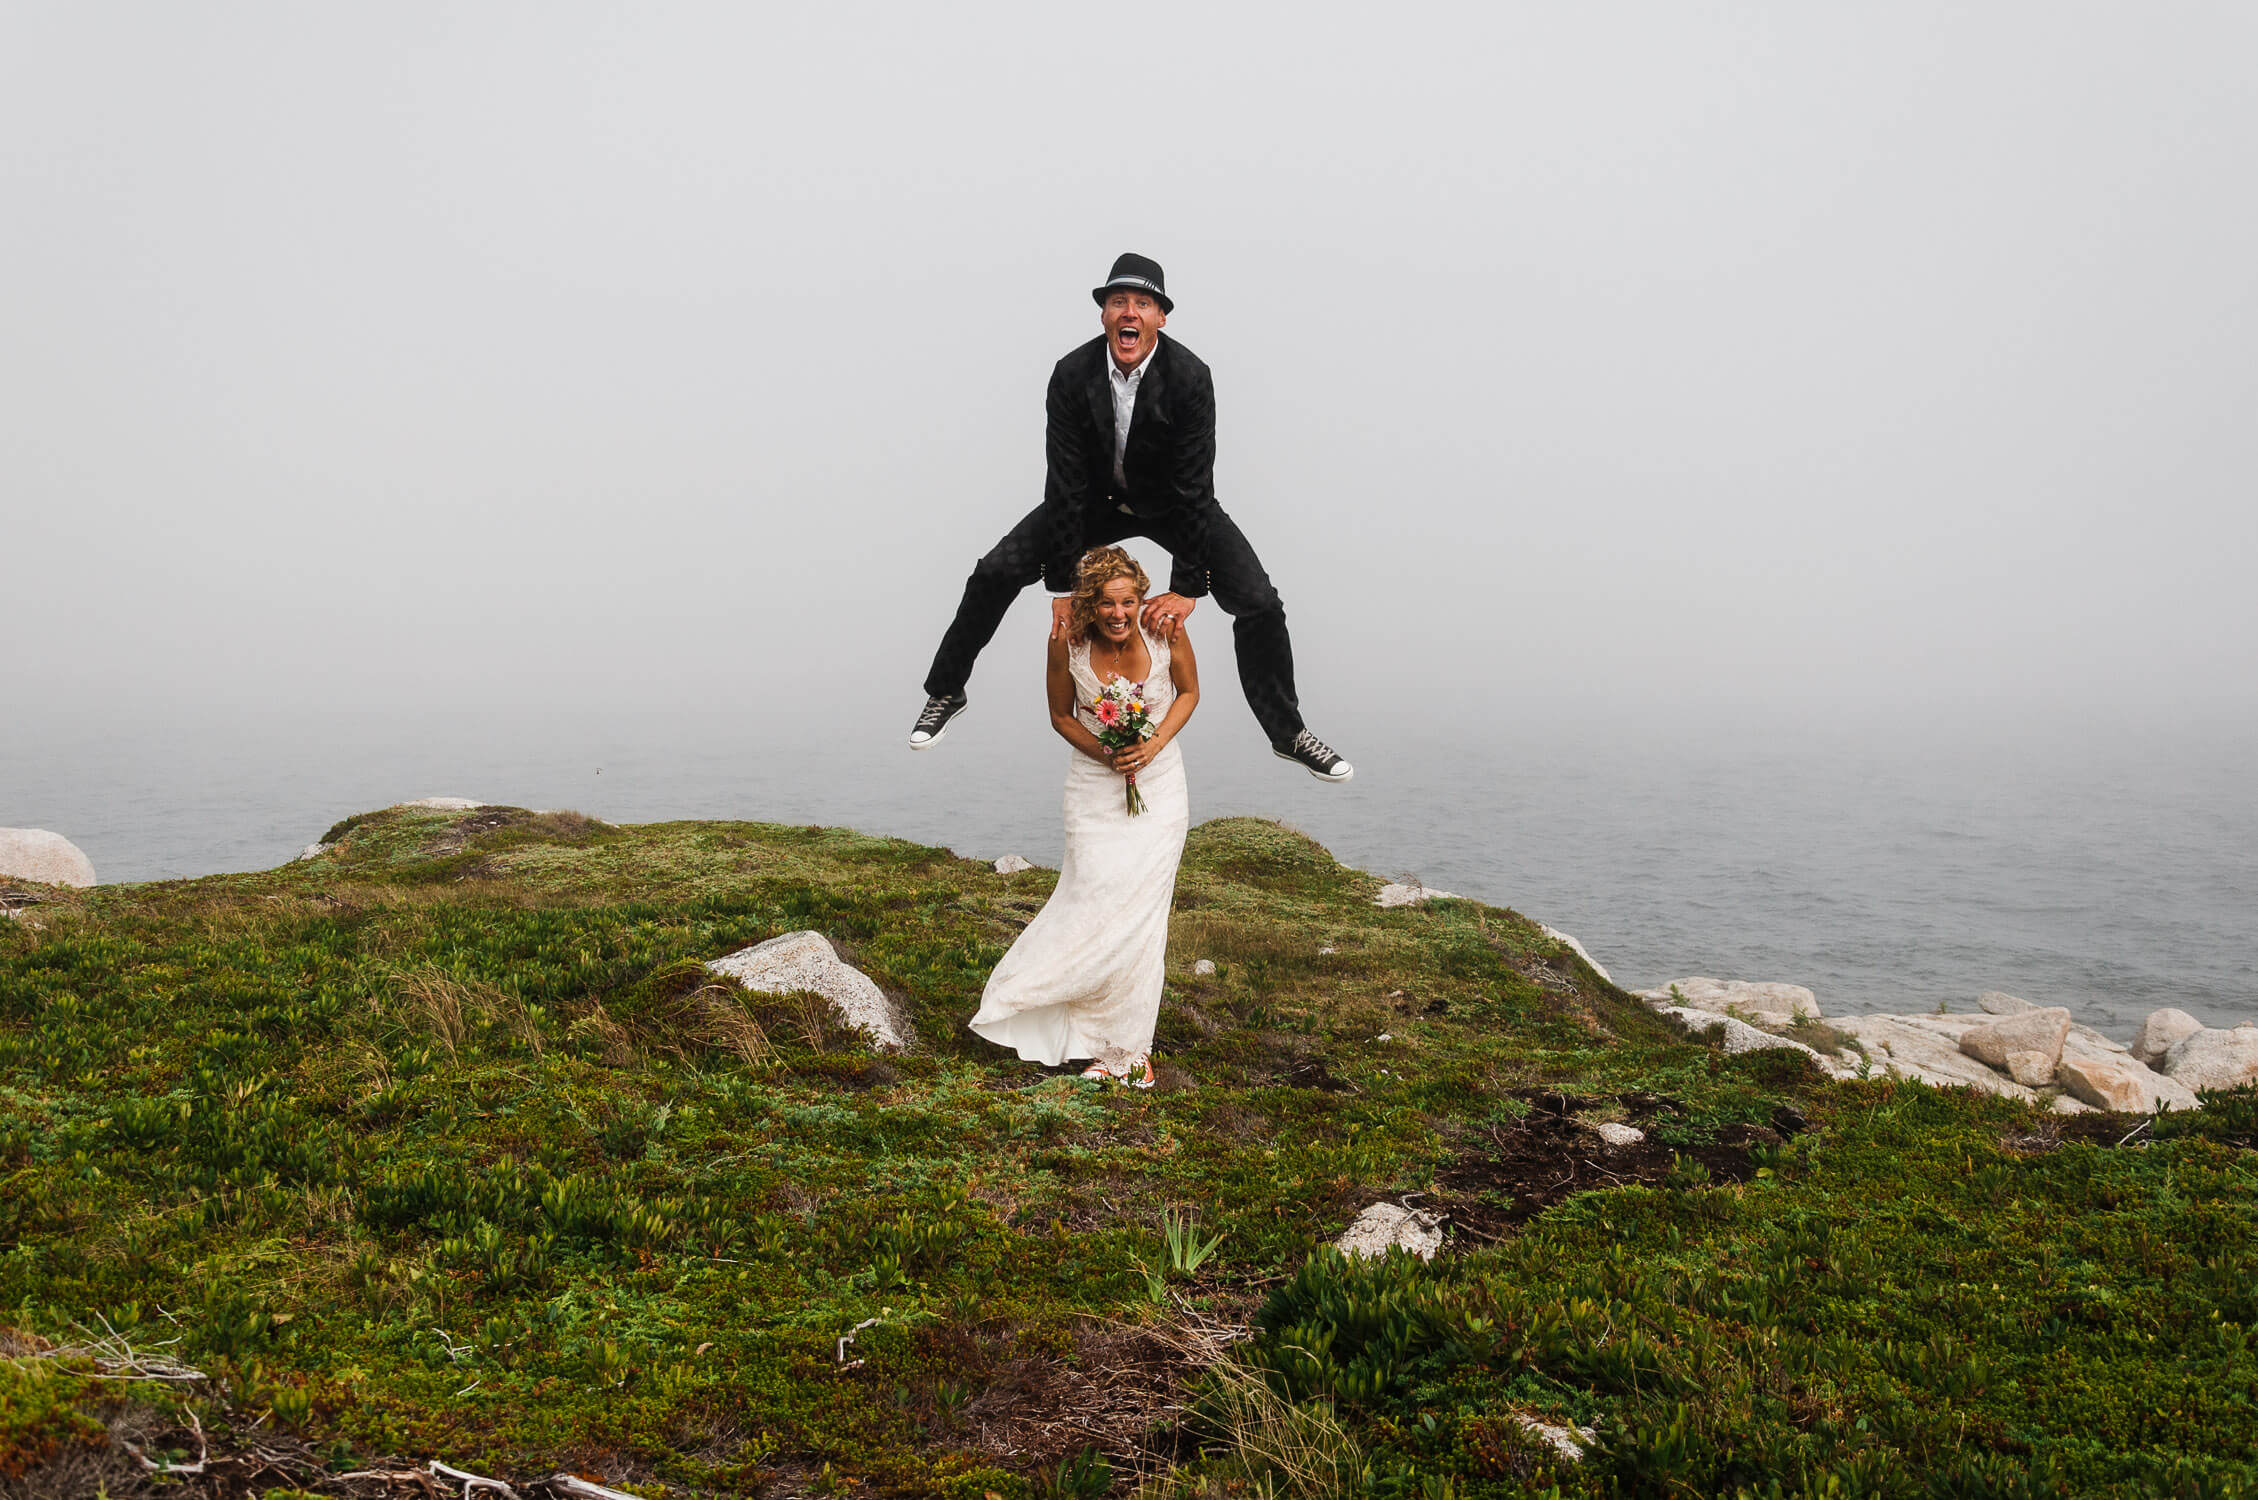 Groom jumping, leap frog style, over bride's shoulders